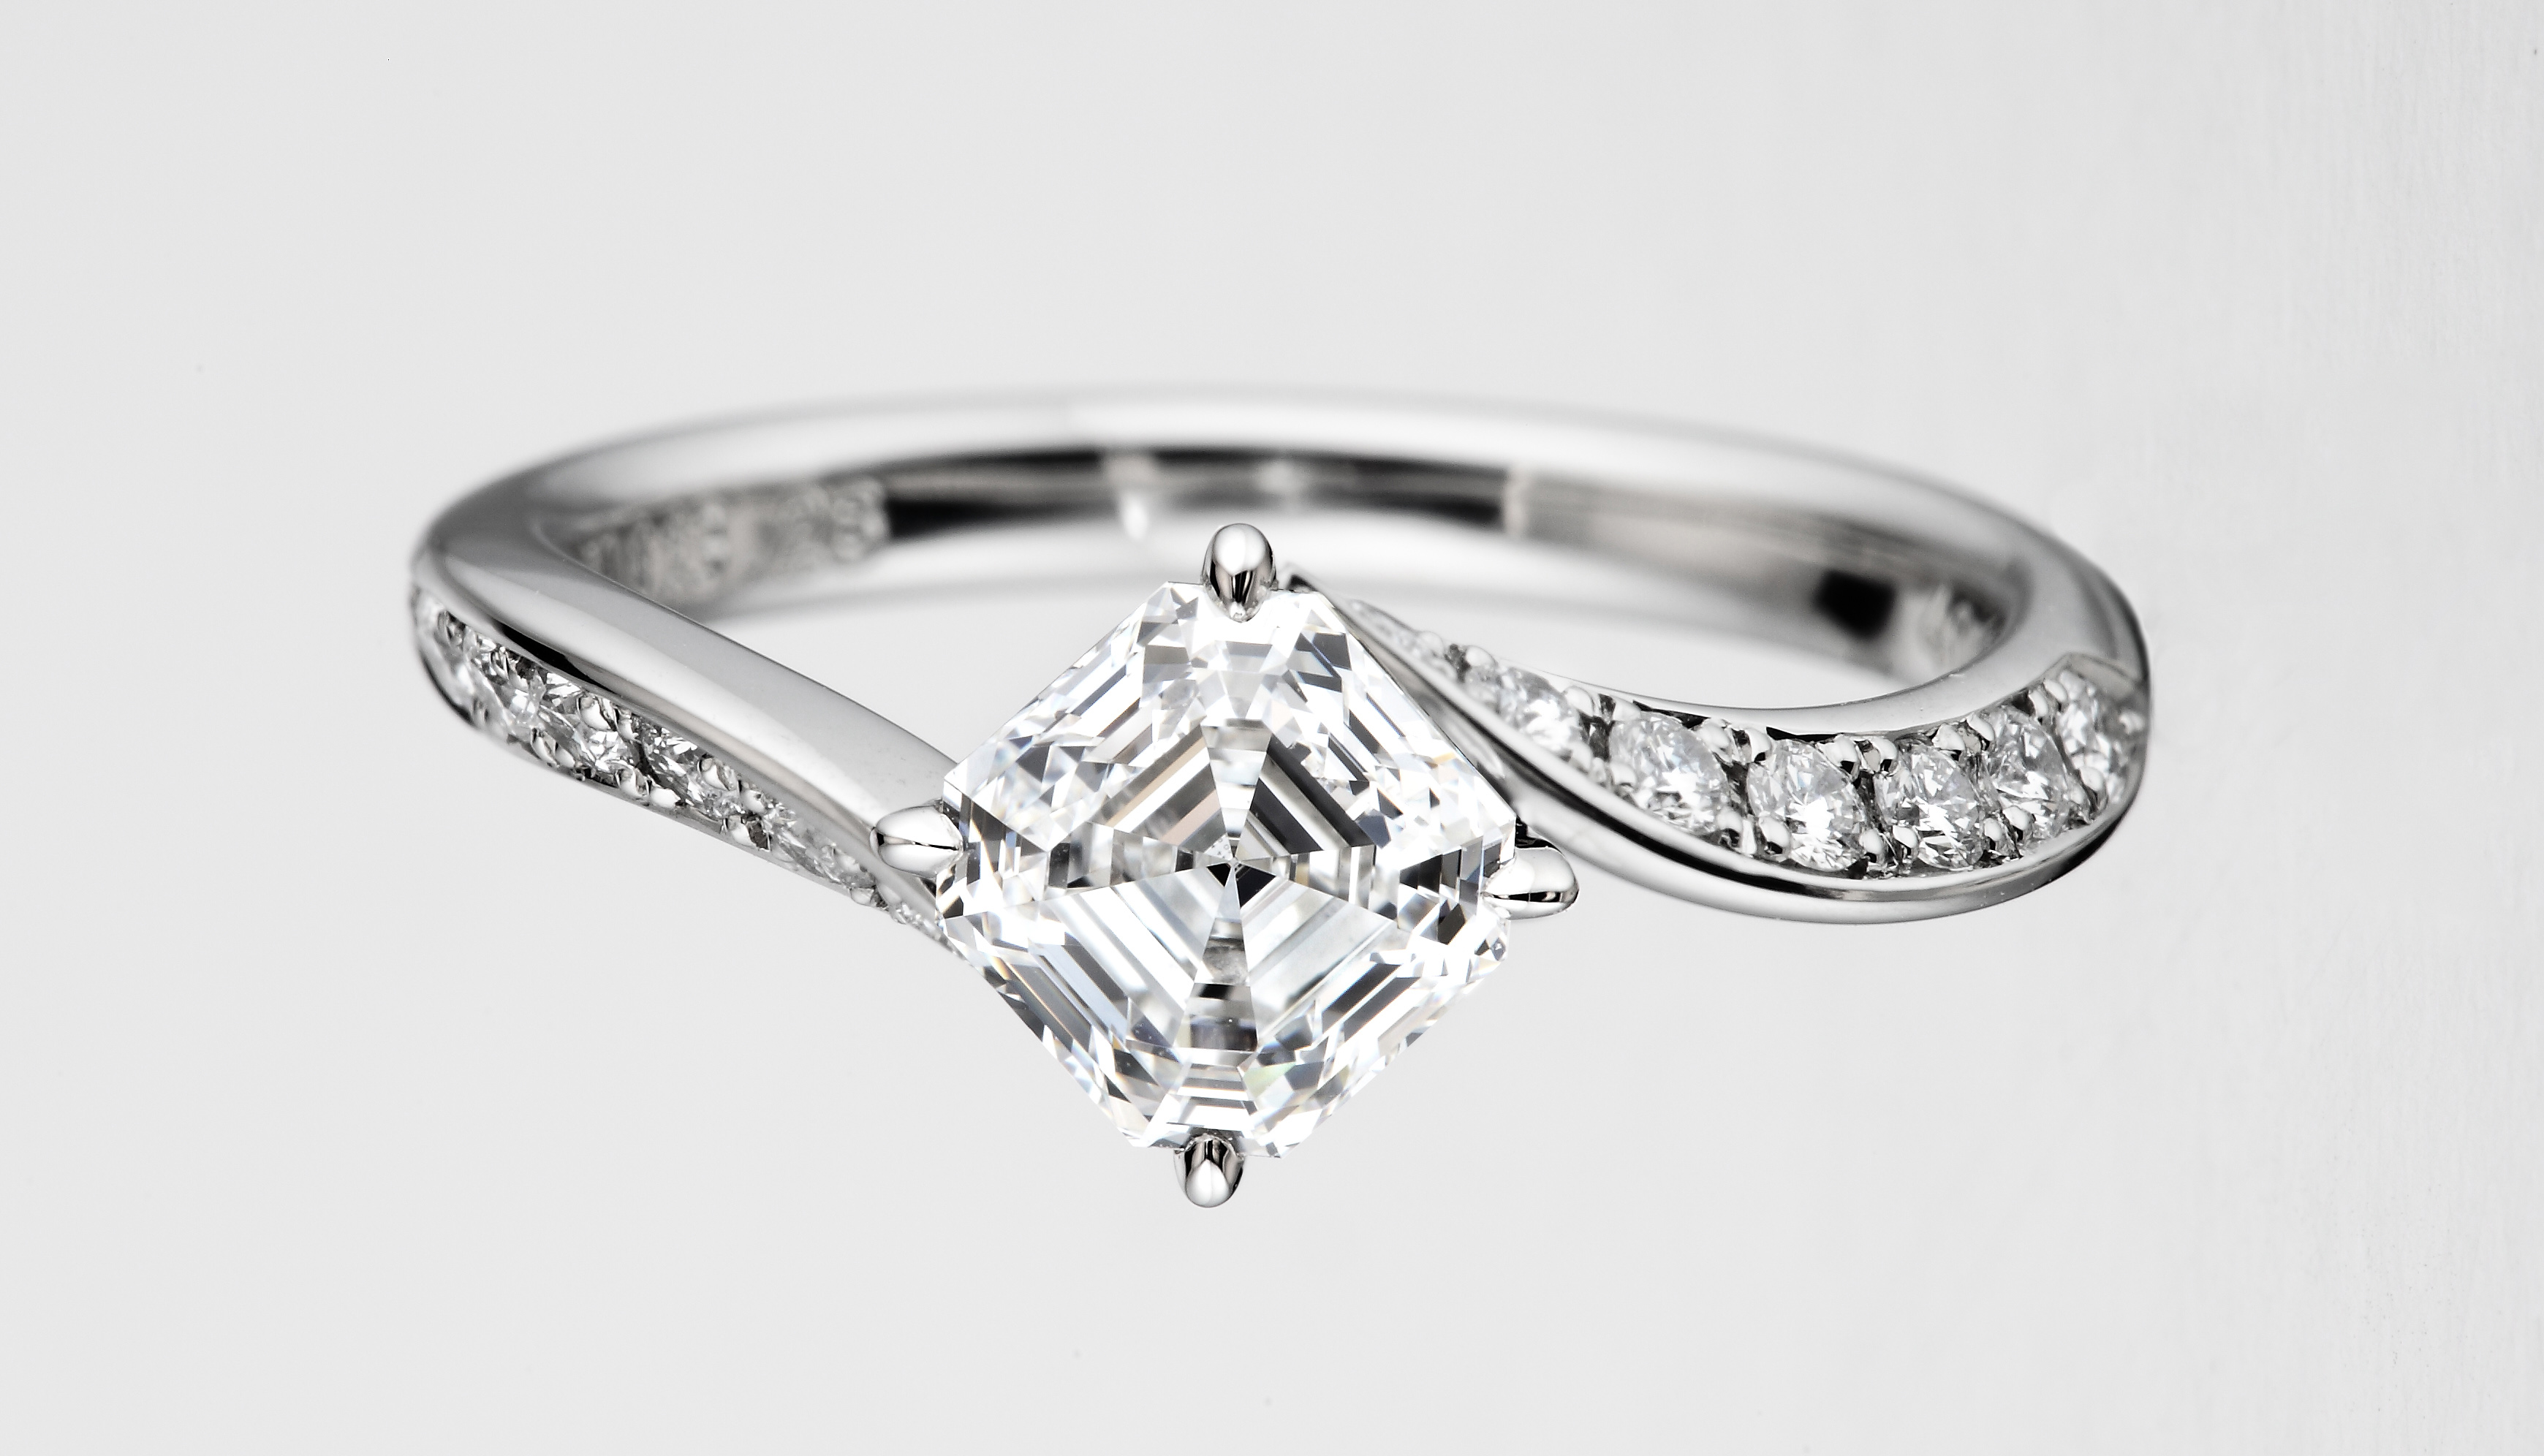 Royal Asscher Engagement Rings, simple and classic